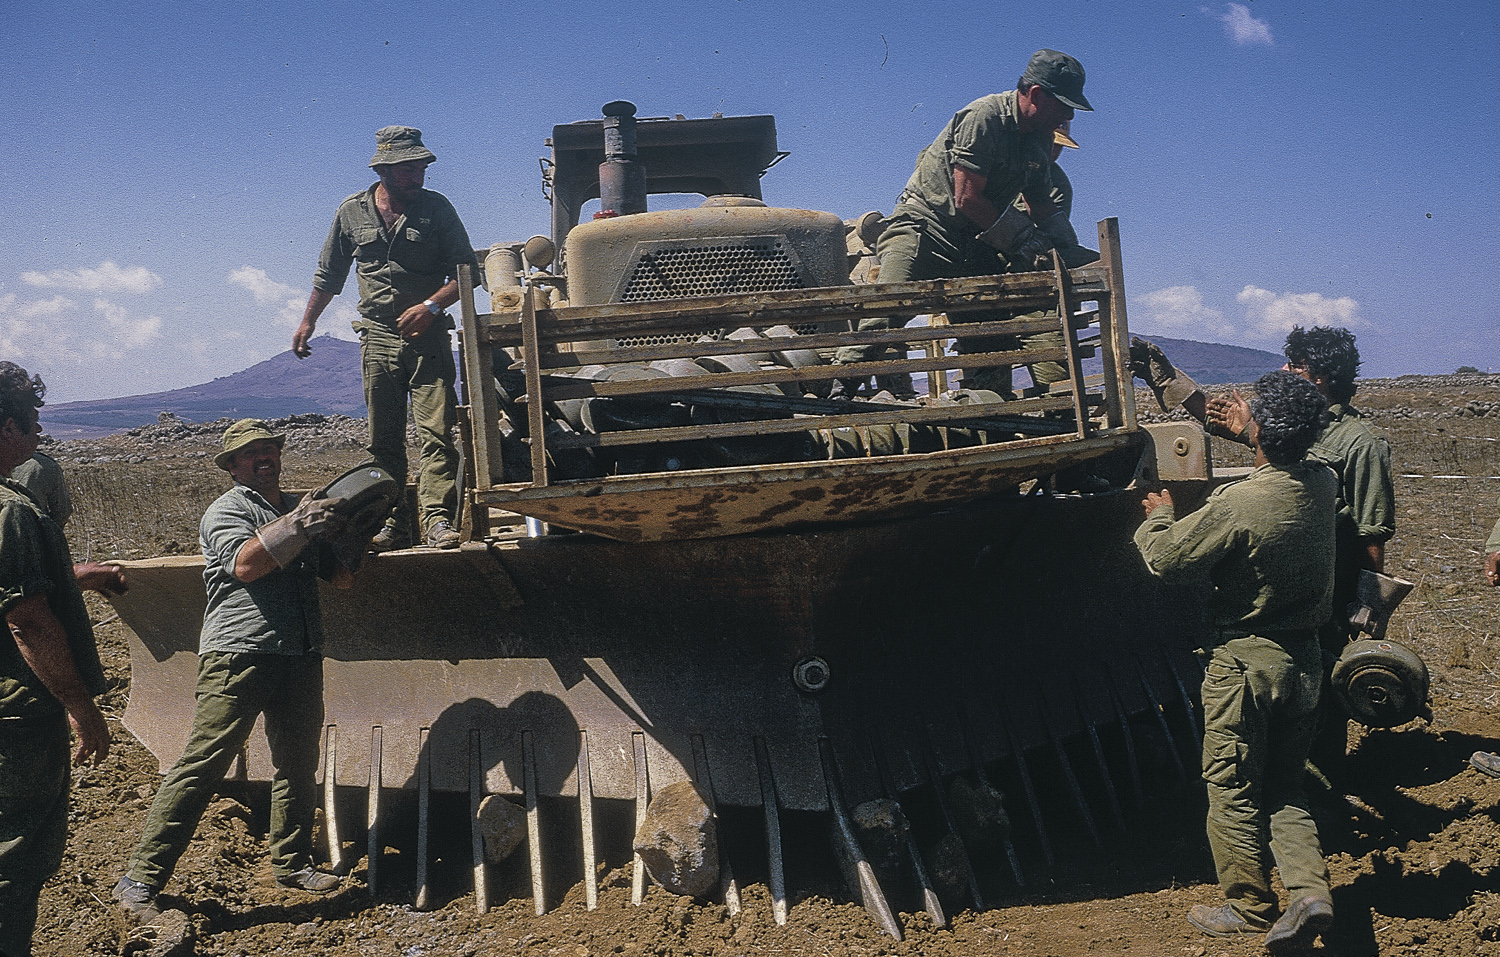 Mine sowing - Golan Heights, 1986